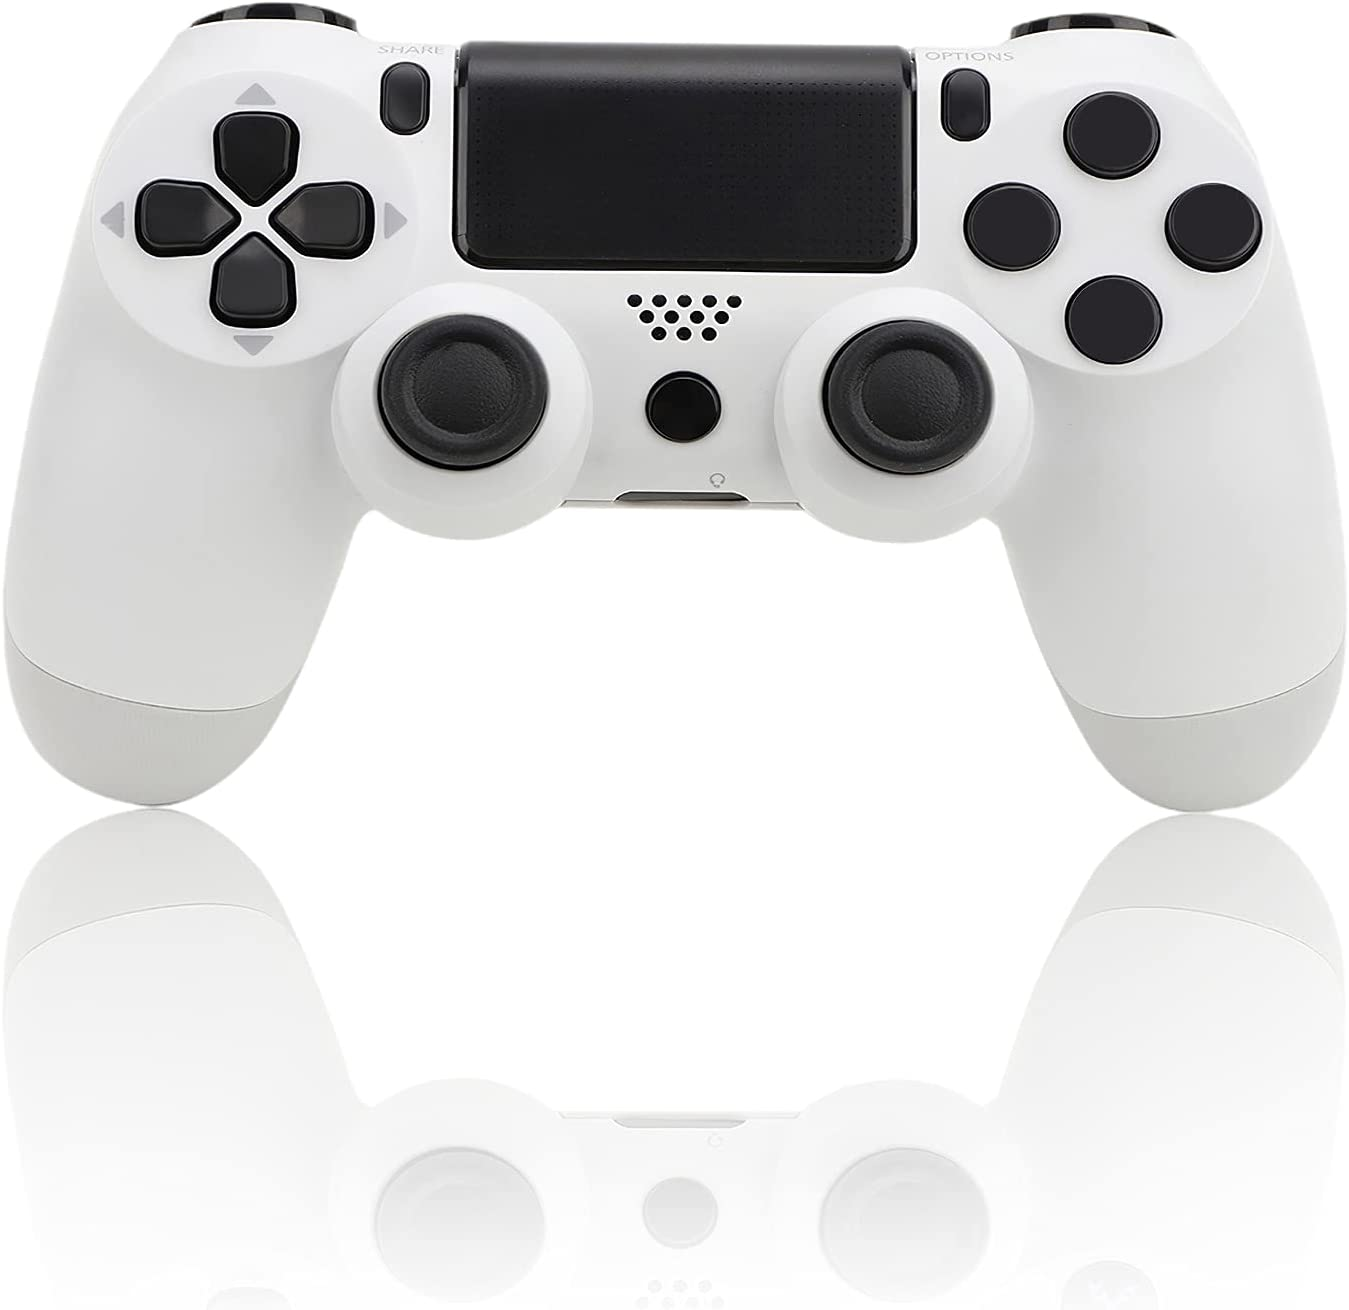 PS4 Controller Upgraded Max 81% OFF Version Wireless Gamepad Max 41% OFF wit Bluetooth